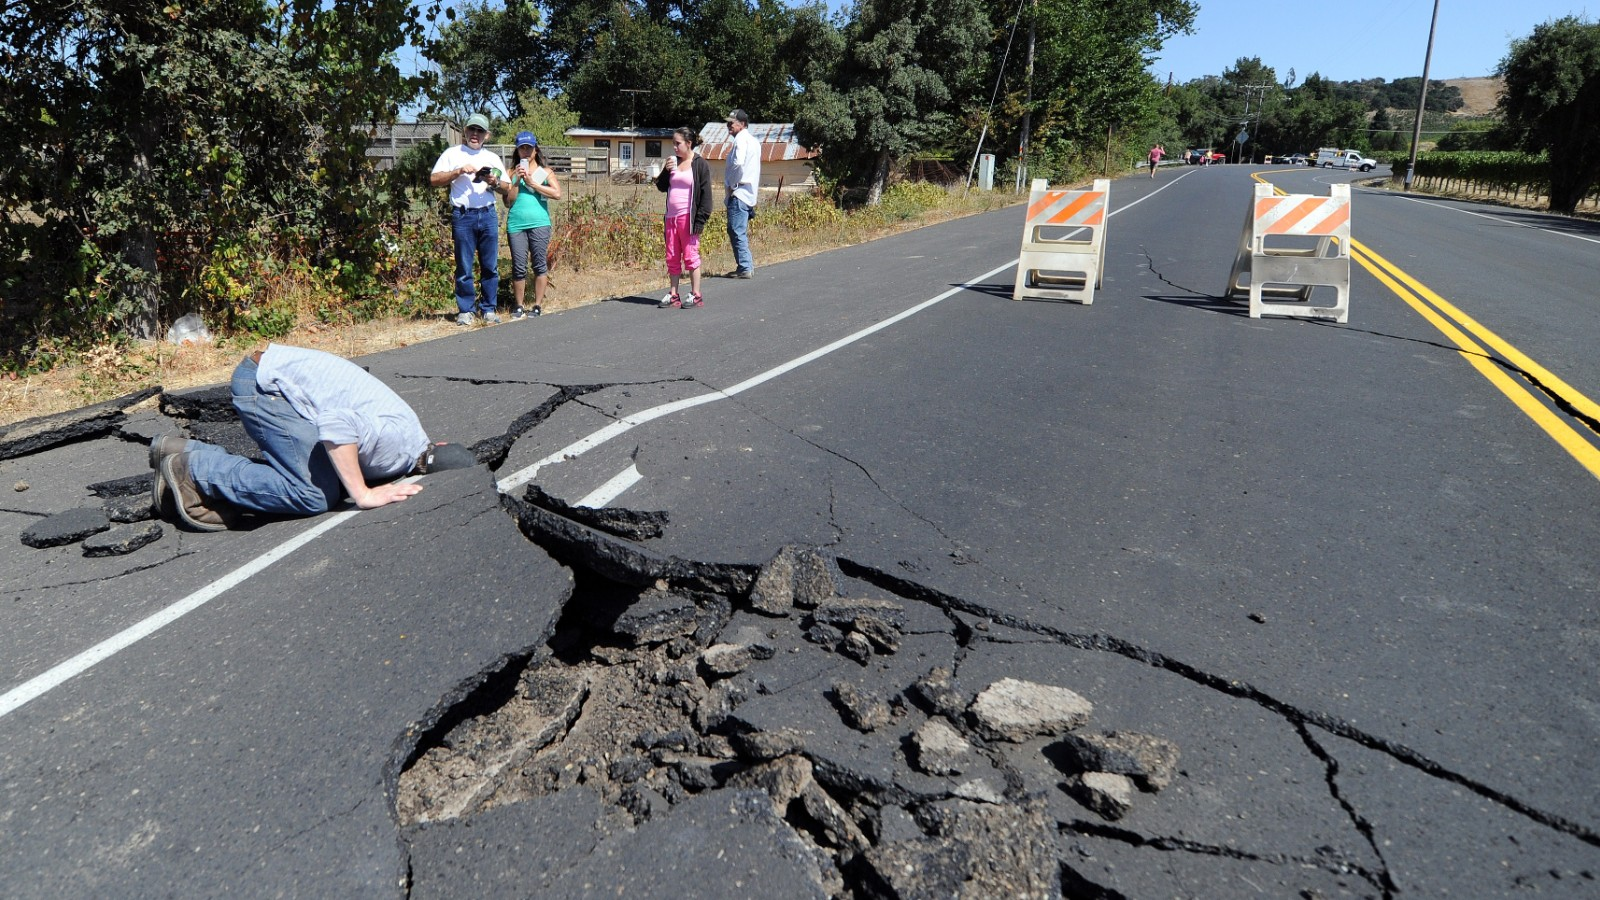 the hayward fault Hayward fault walking tour scheduled tours july 28, august 18, september 15,  october 6, november 17 over the last million years, the natural beauty of.